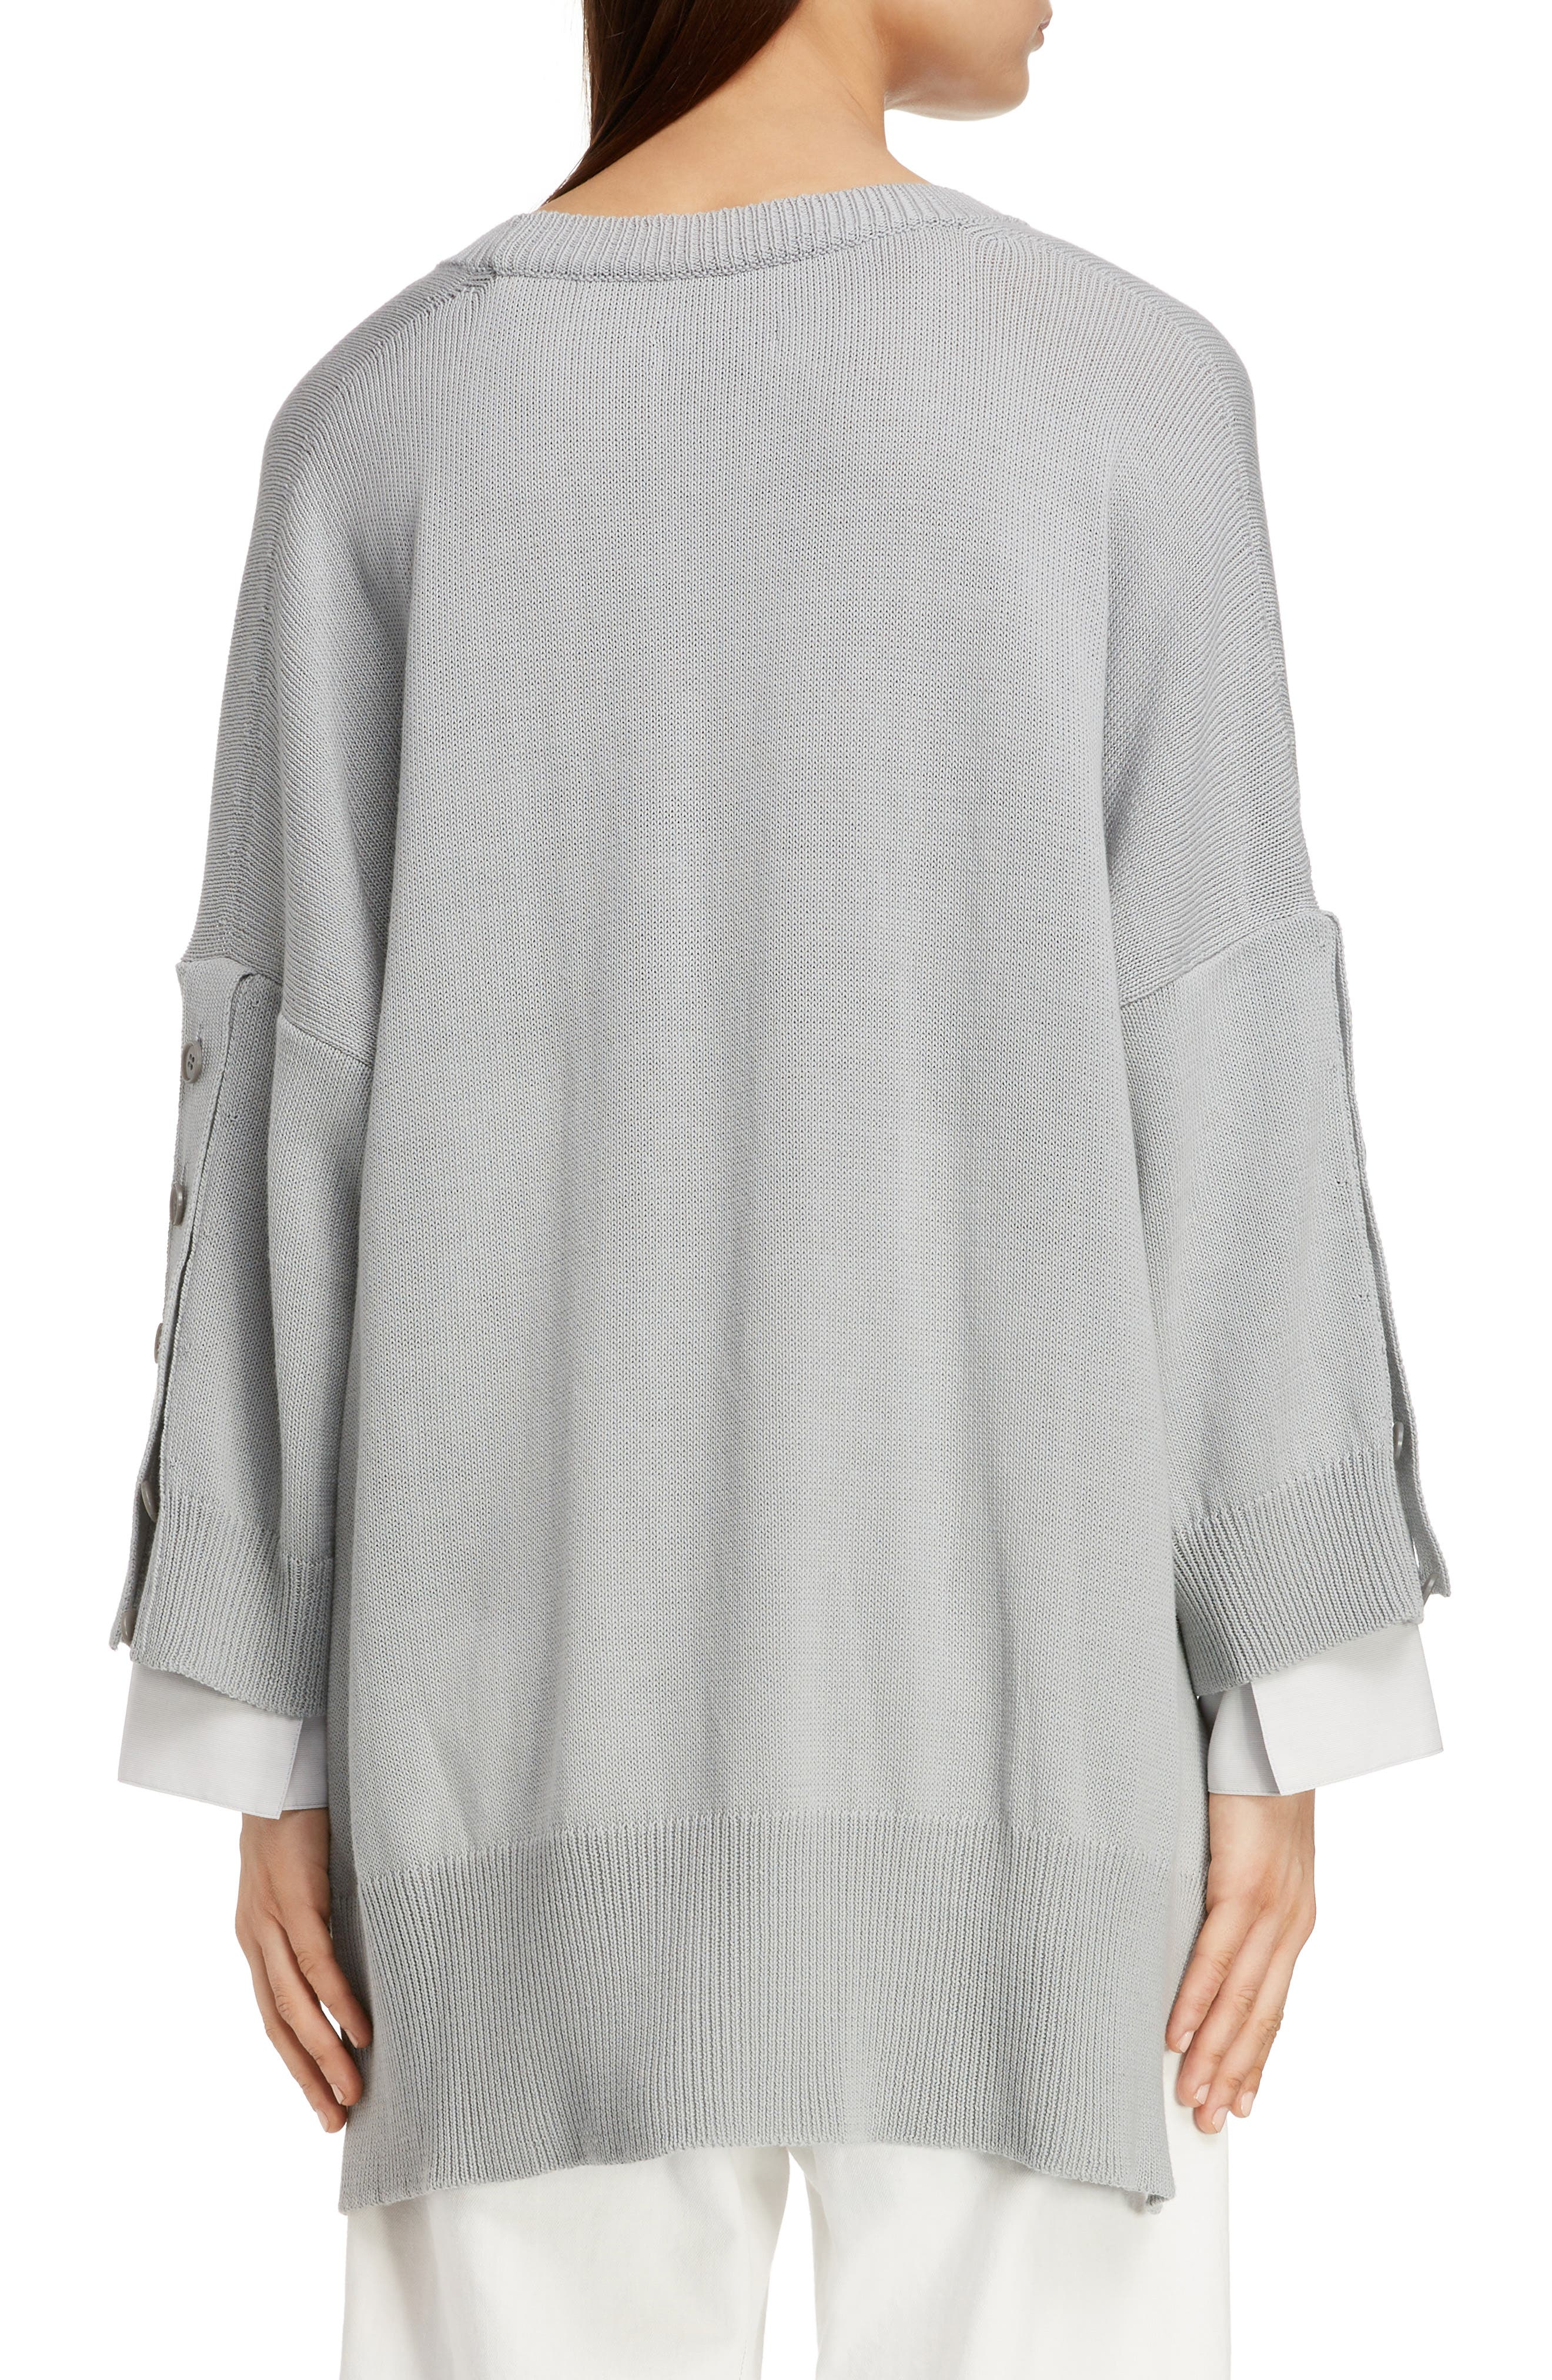 Button Sleeve Sweater,                             Alternate thumbnail 2, color,                             LIGHT GREY